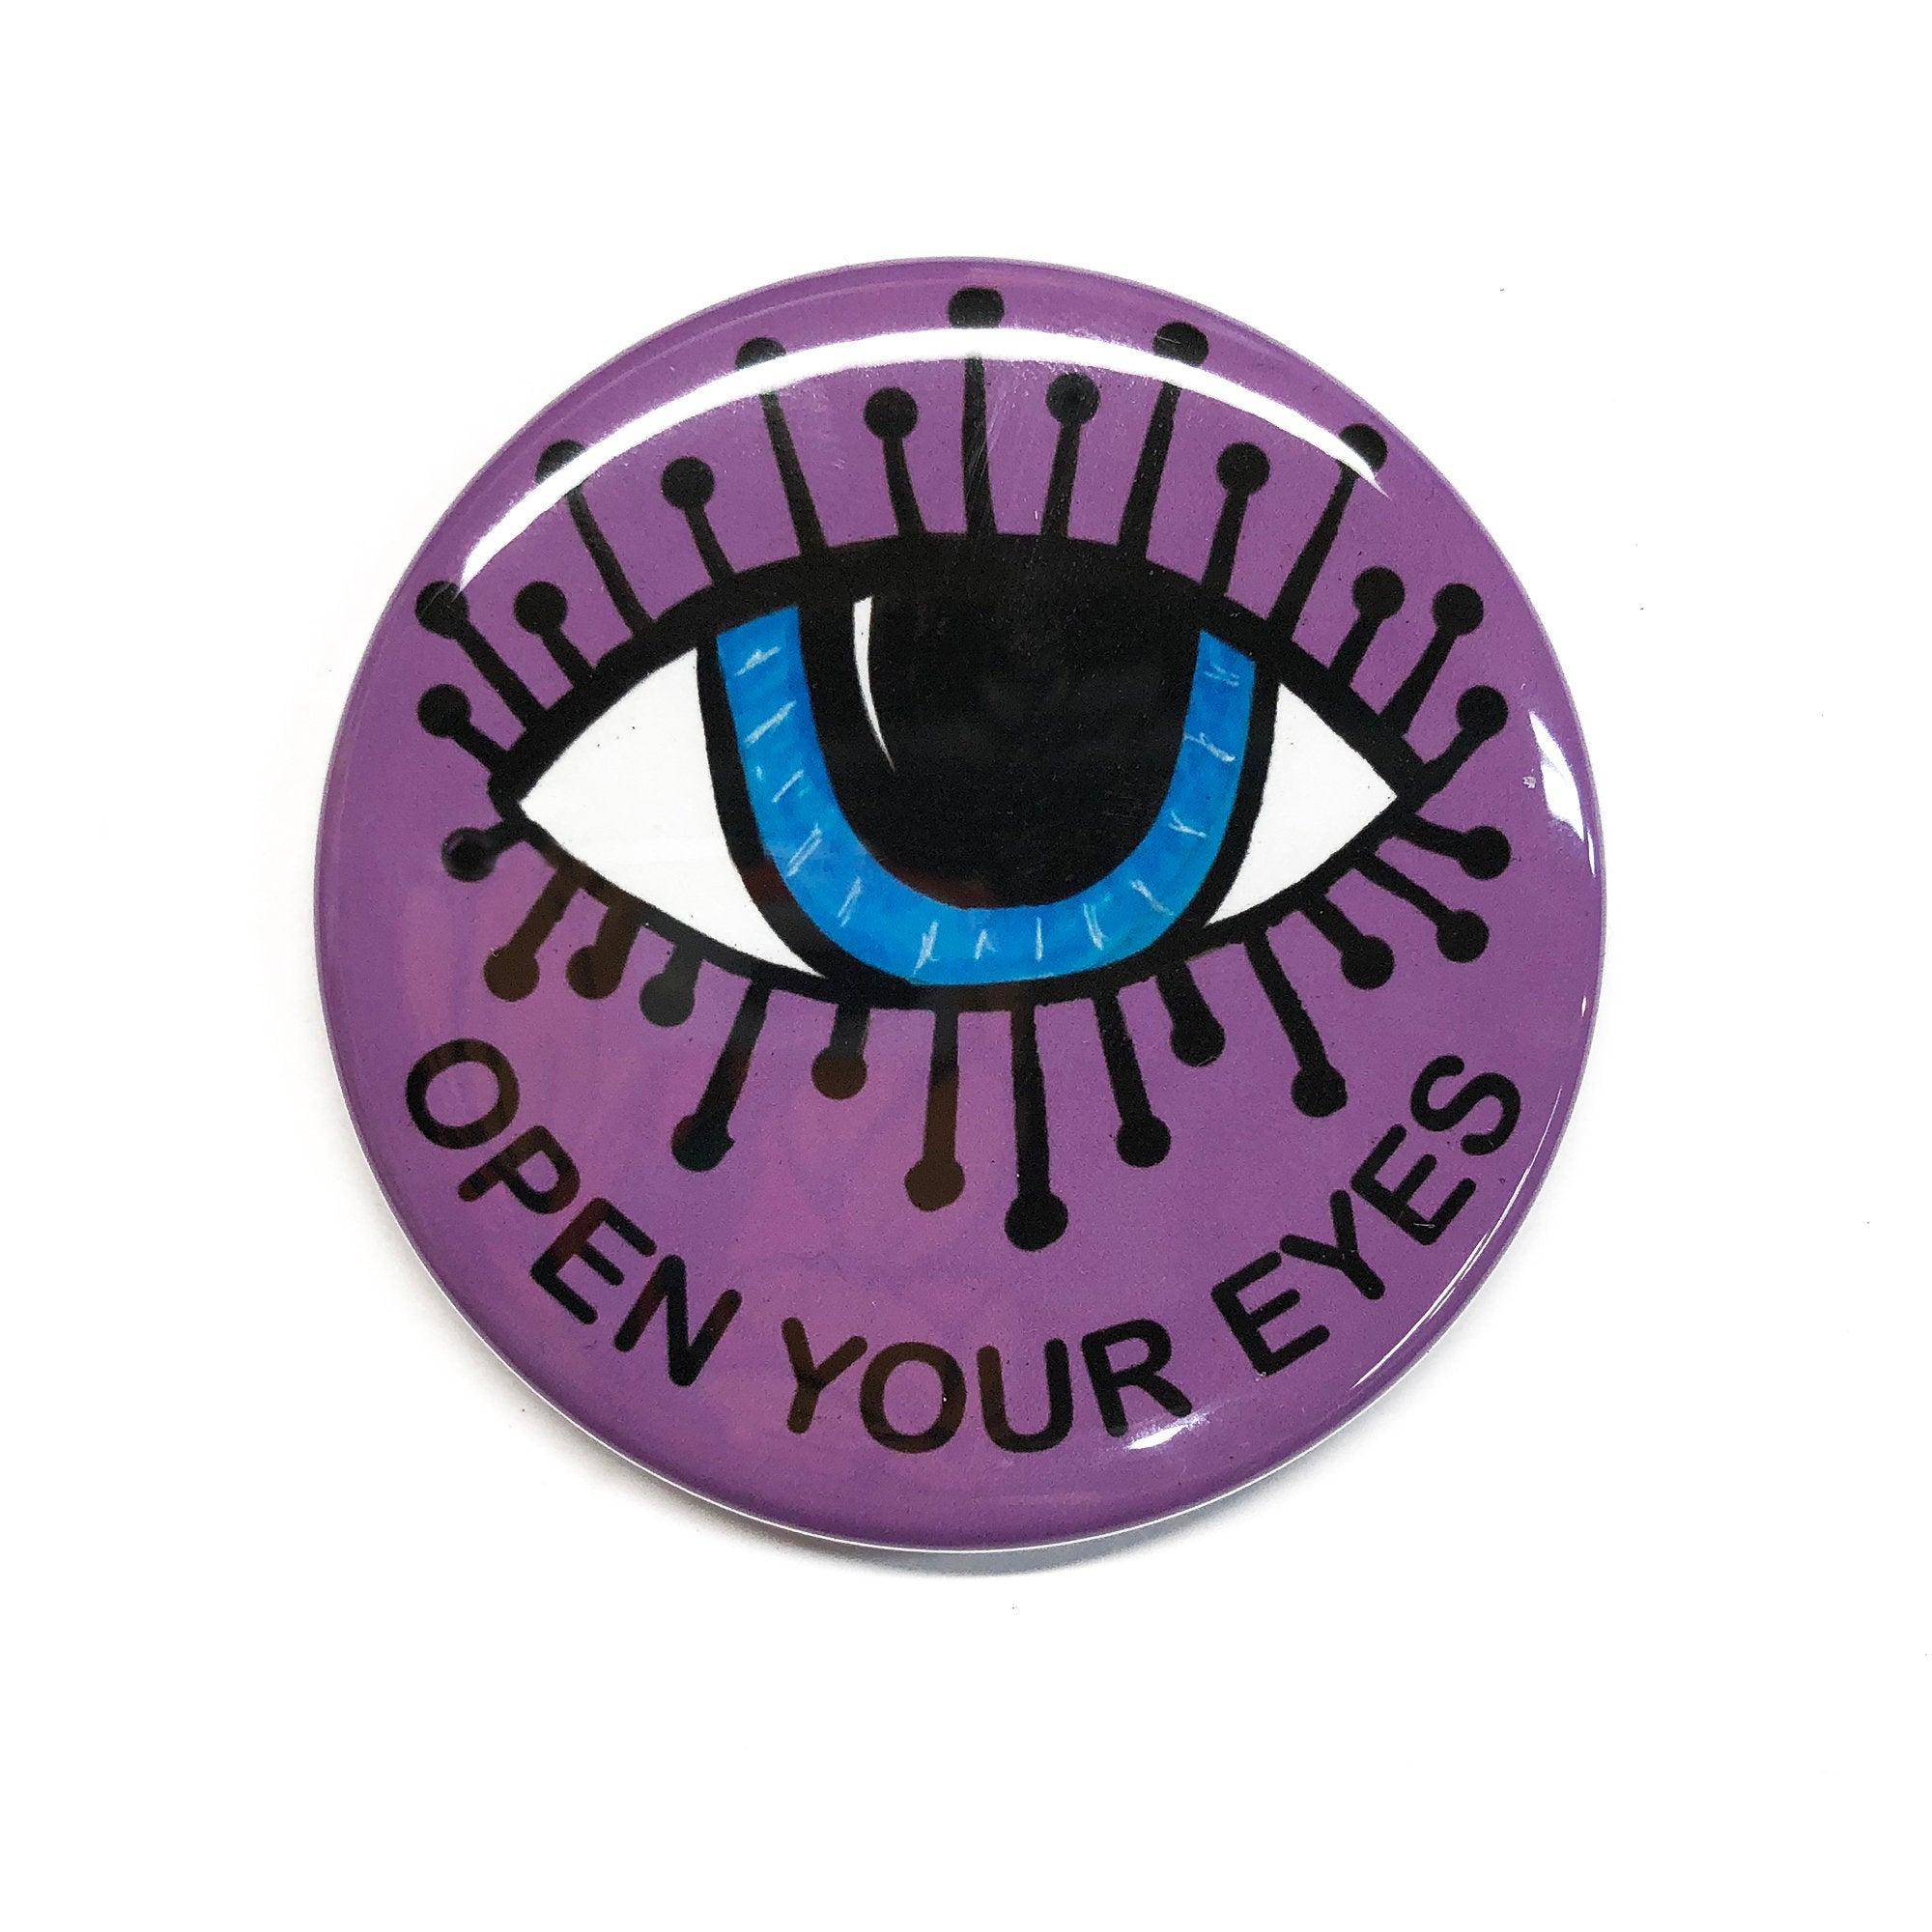 Open Your Eyes Pin, Magnet, or Mirror